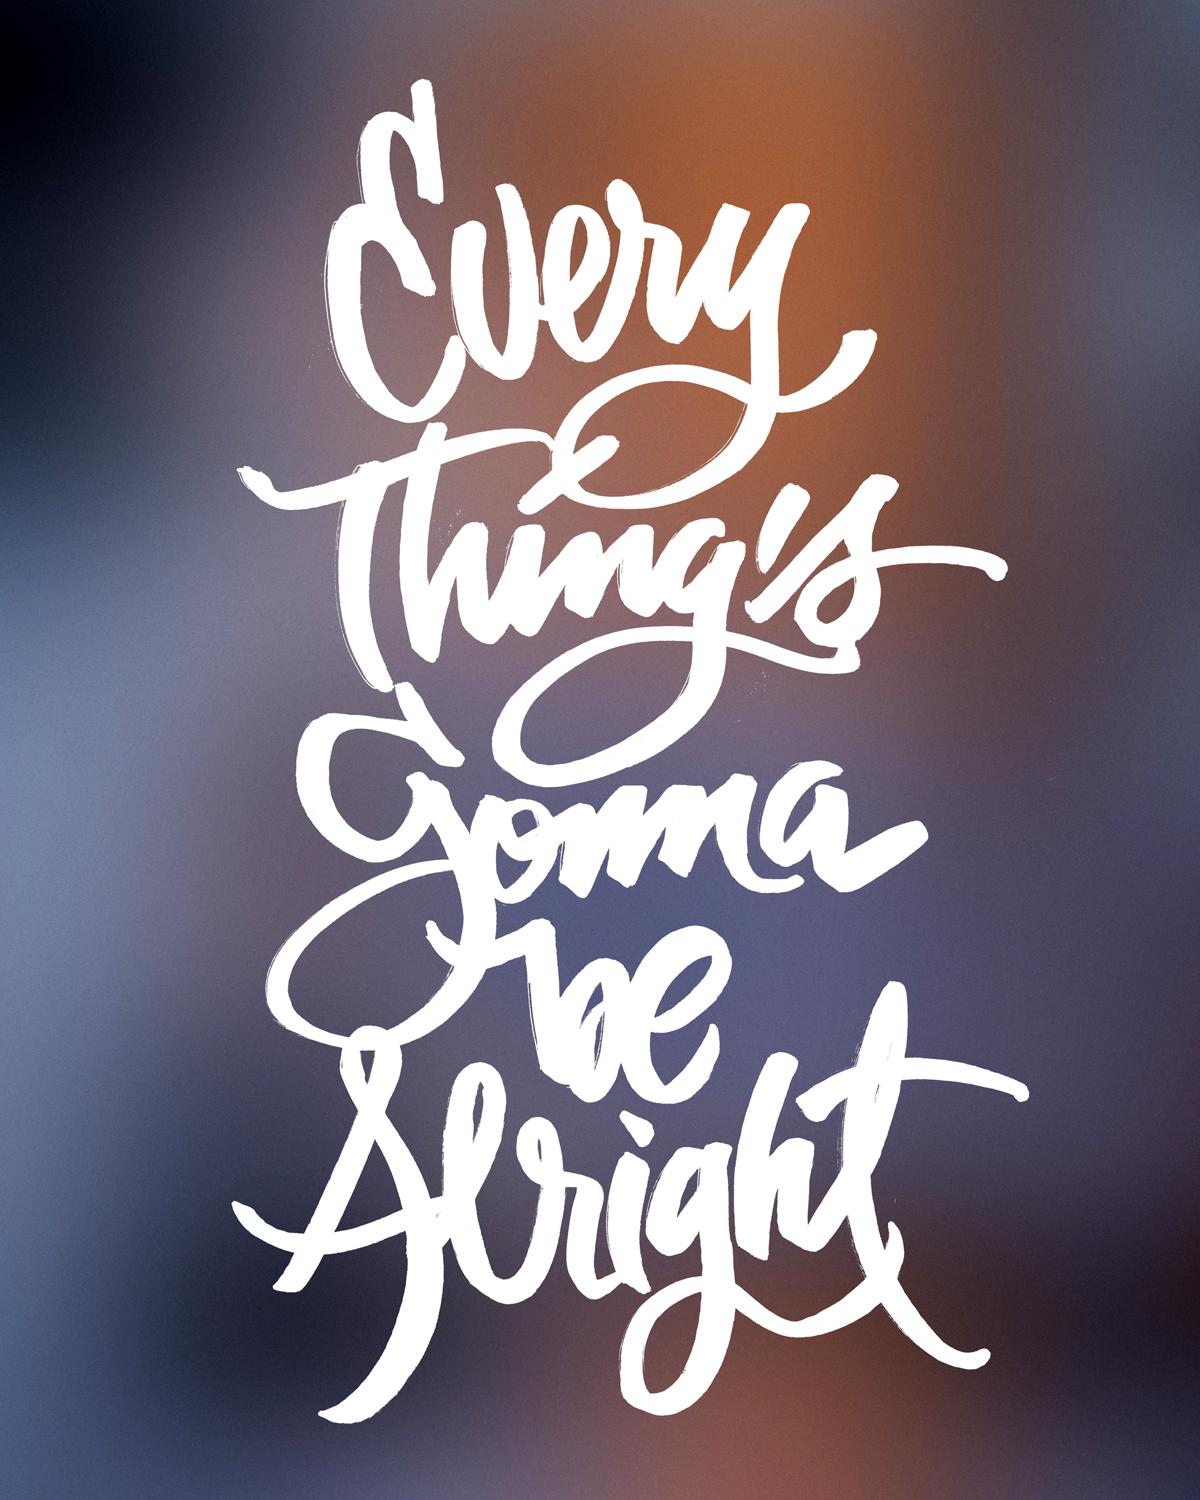 148-Everything's-Gonna-Be-Alright.jpg